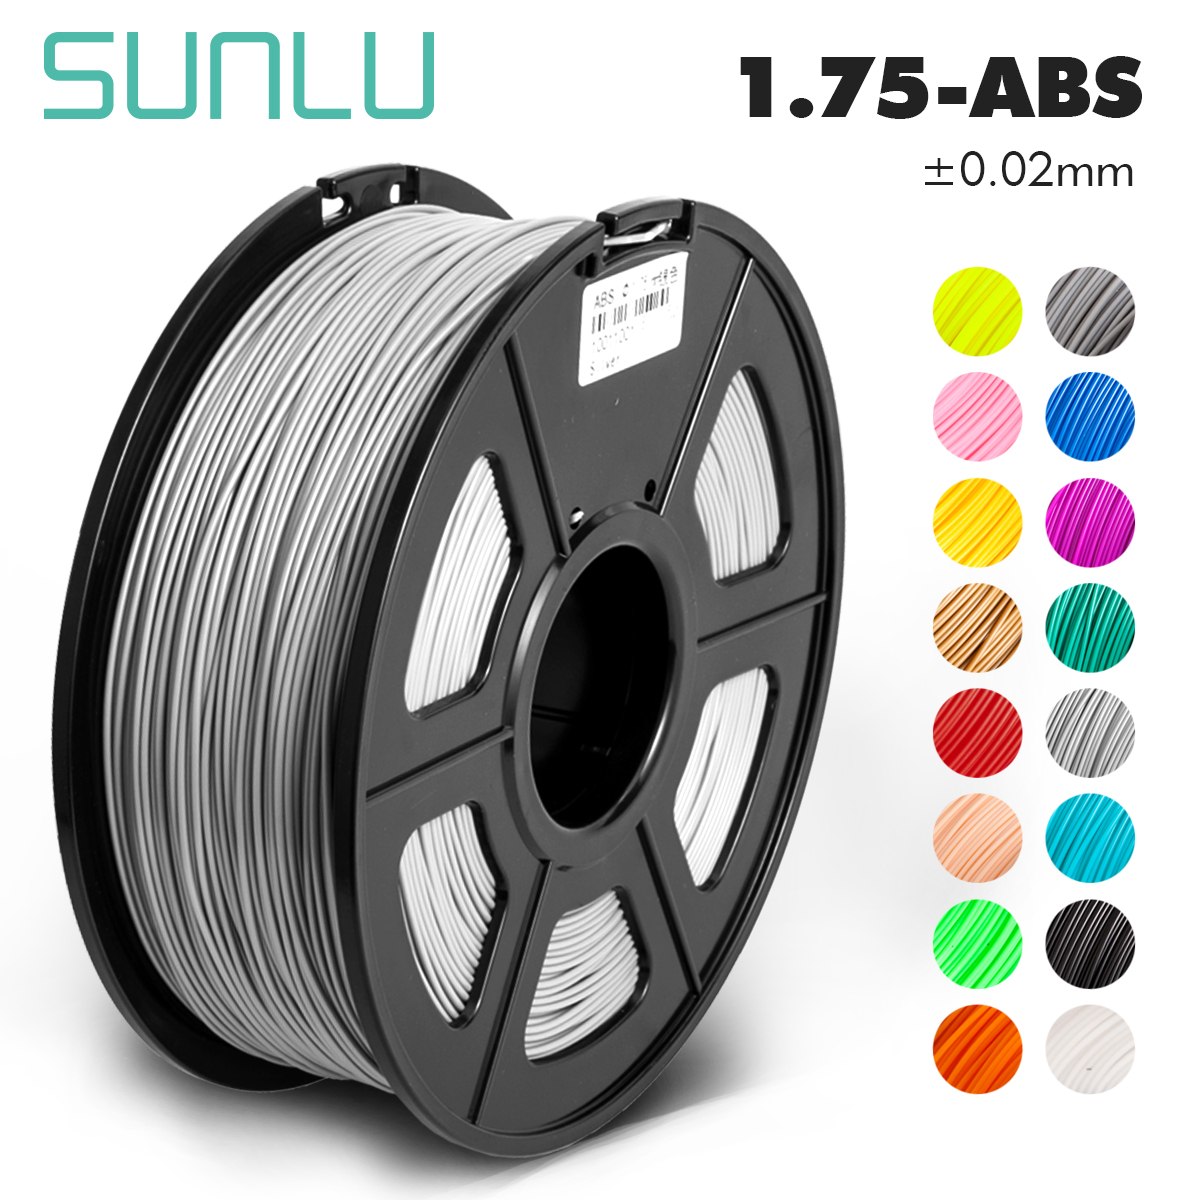 SUNLU ABS black electrical 3D transparent abs filament 1.75mm 1KG/roll for 3d printer with 1.75mm abs for kids designing toys 3D Printing Materials     - title=